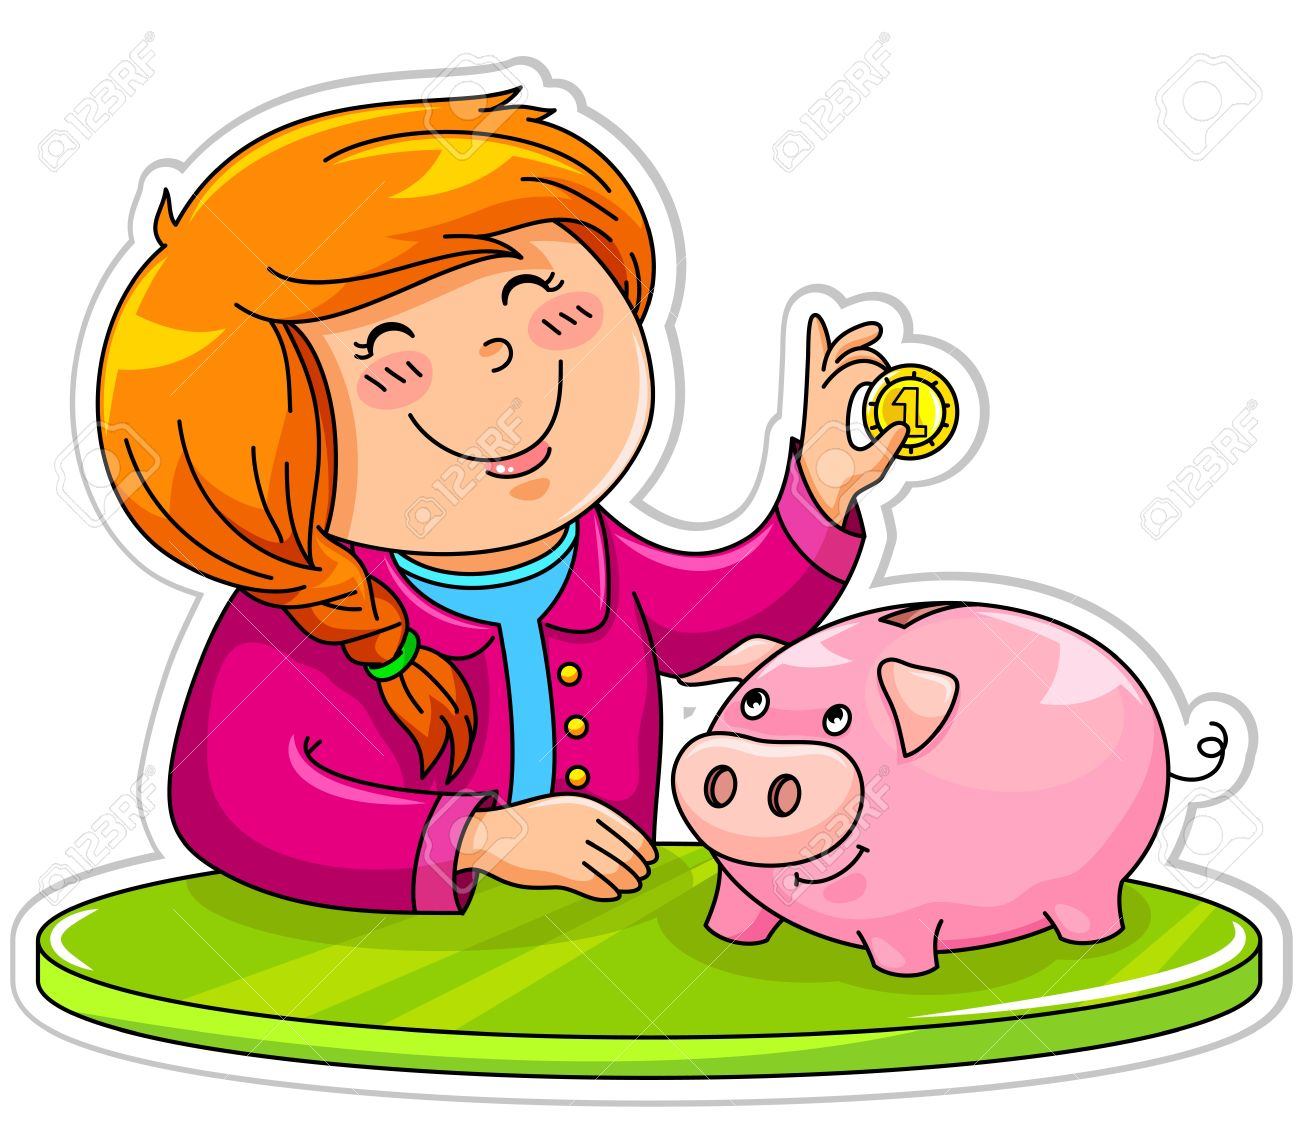 Little Girl Putting A Coin In Her Piggy Bank Royalty Free Cliparts.